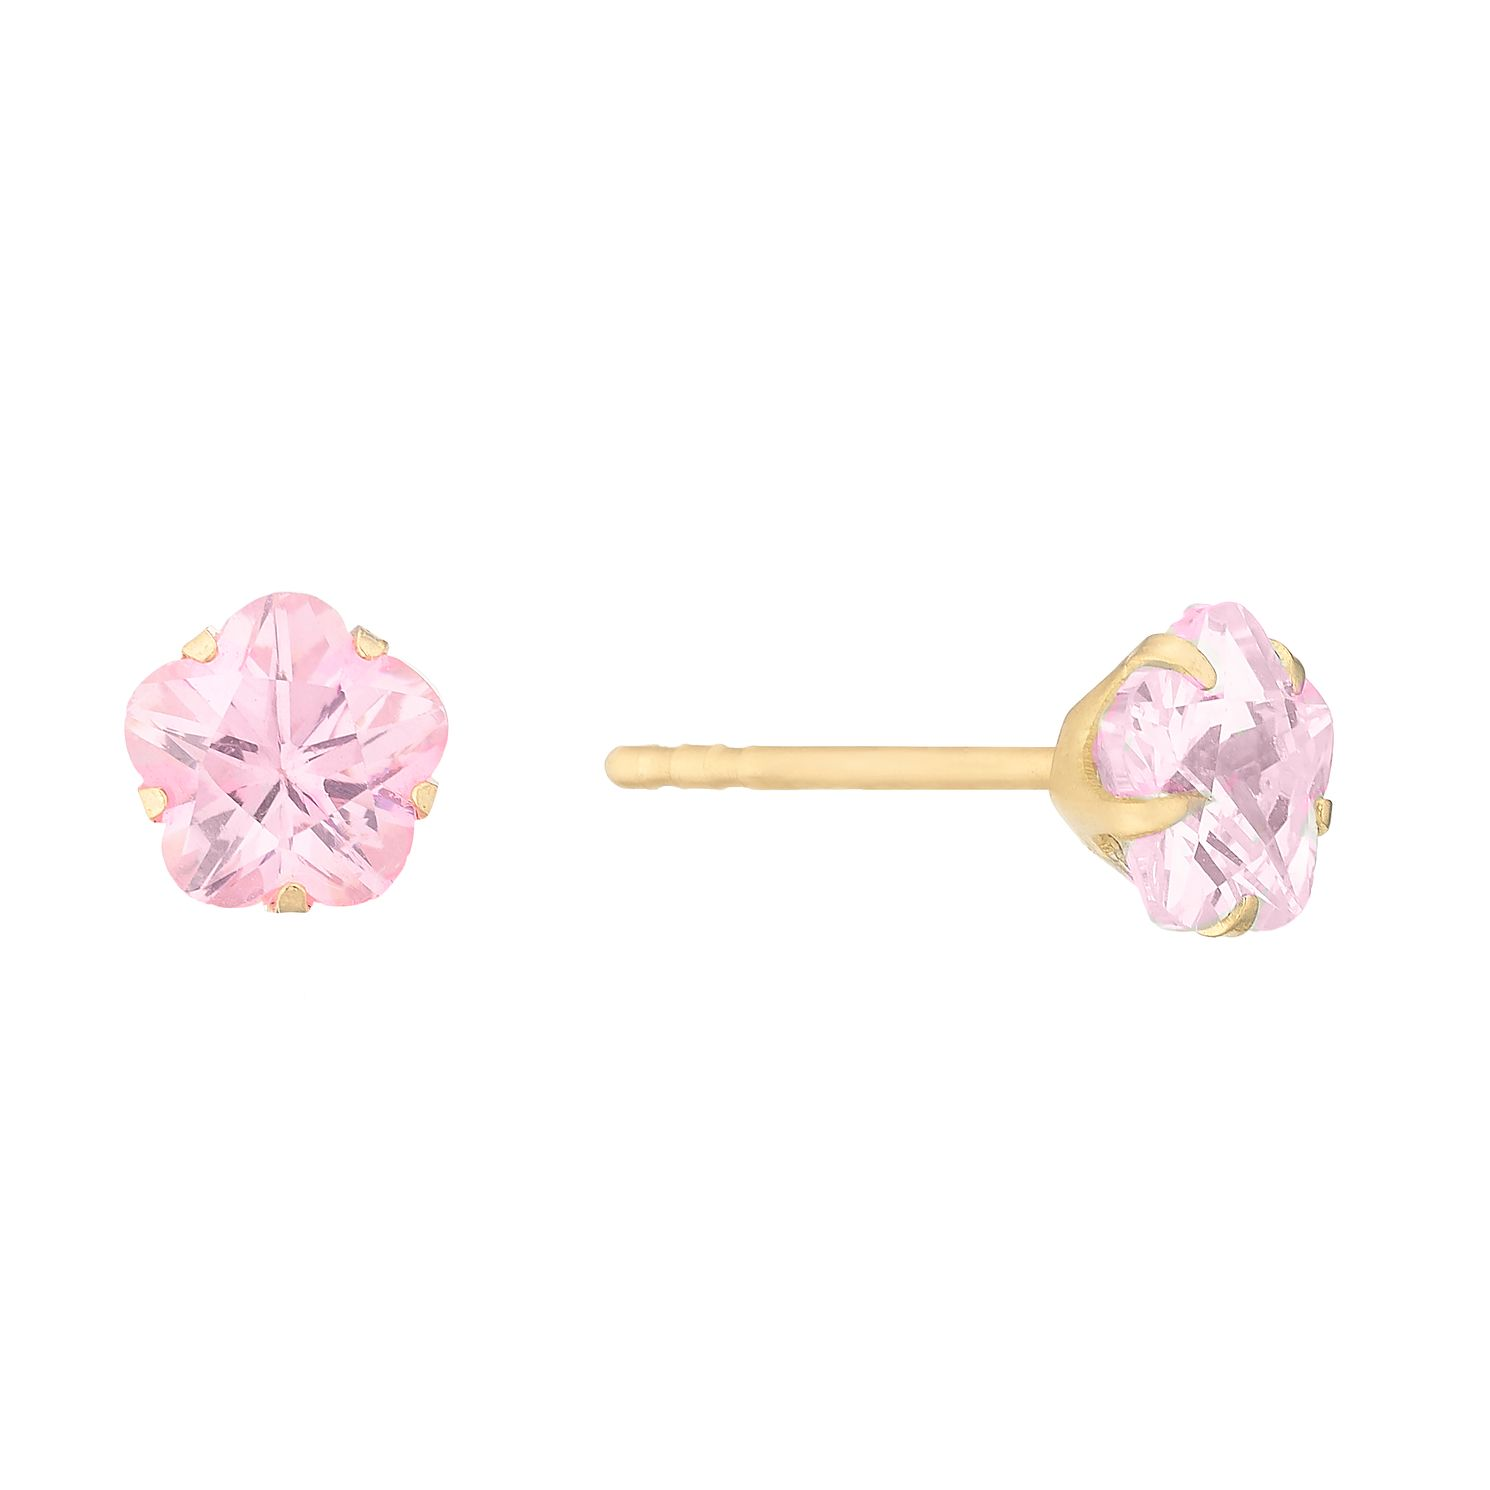 Children's 9ct Gold Pink Cubic Zirconia Flower Stud Earrings - Product number 4653572